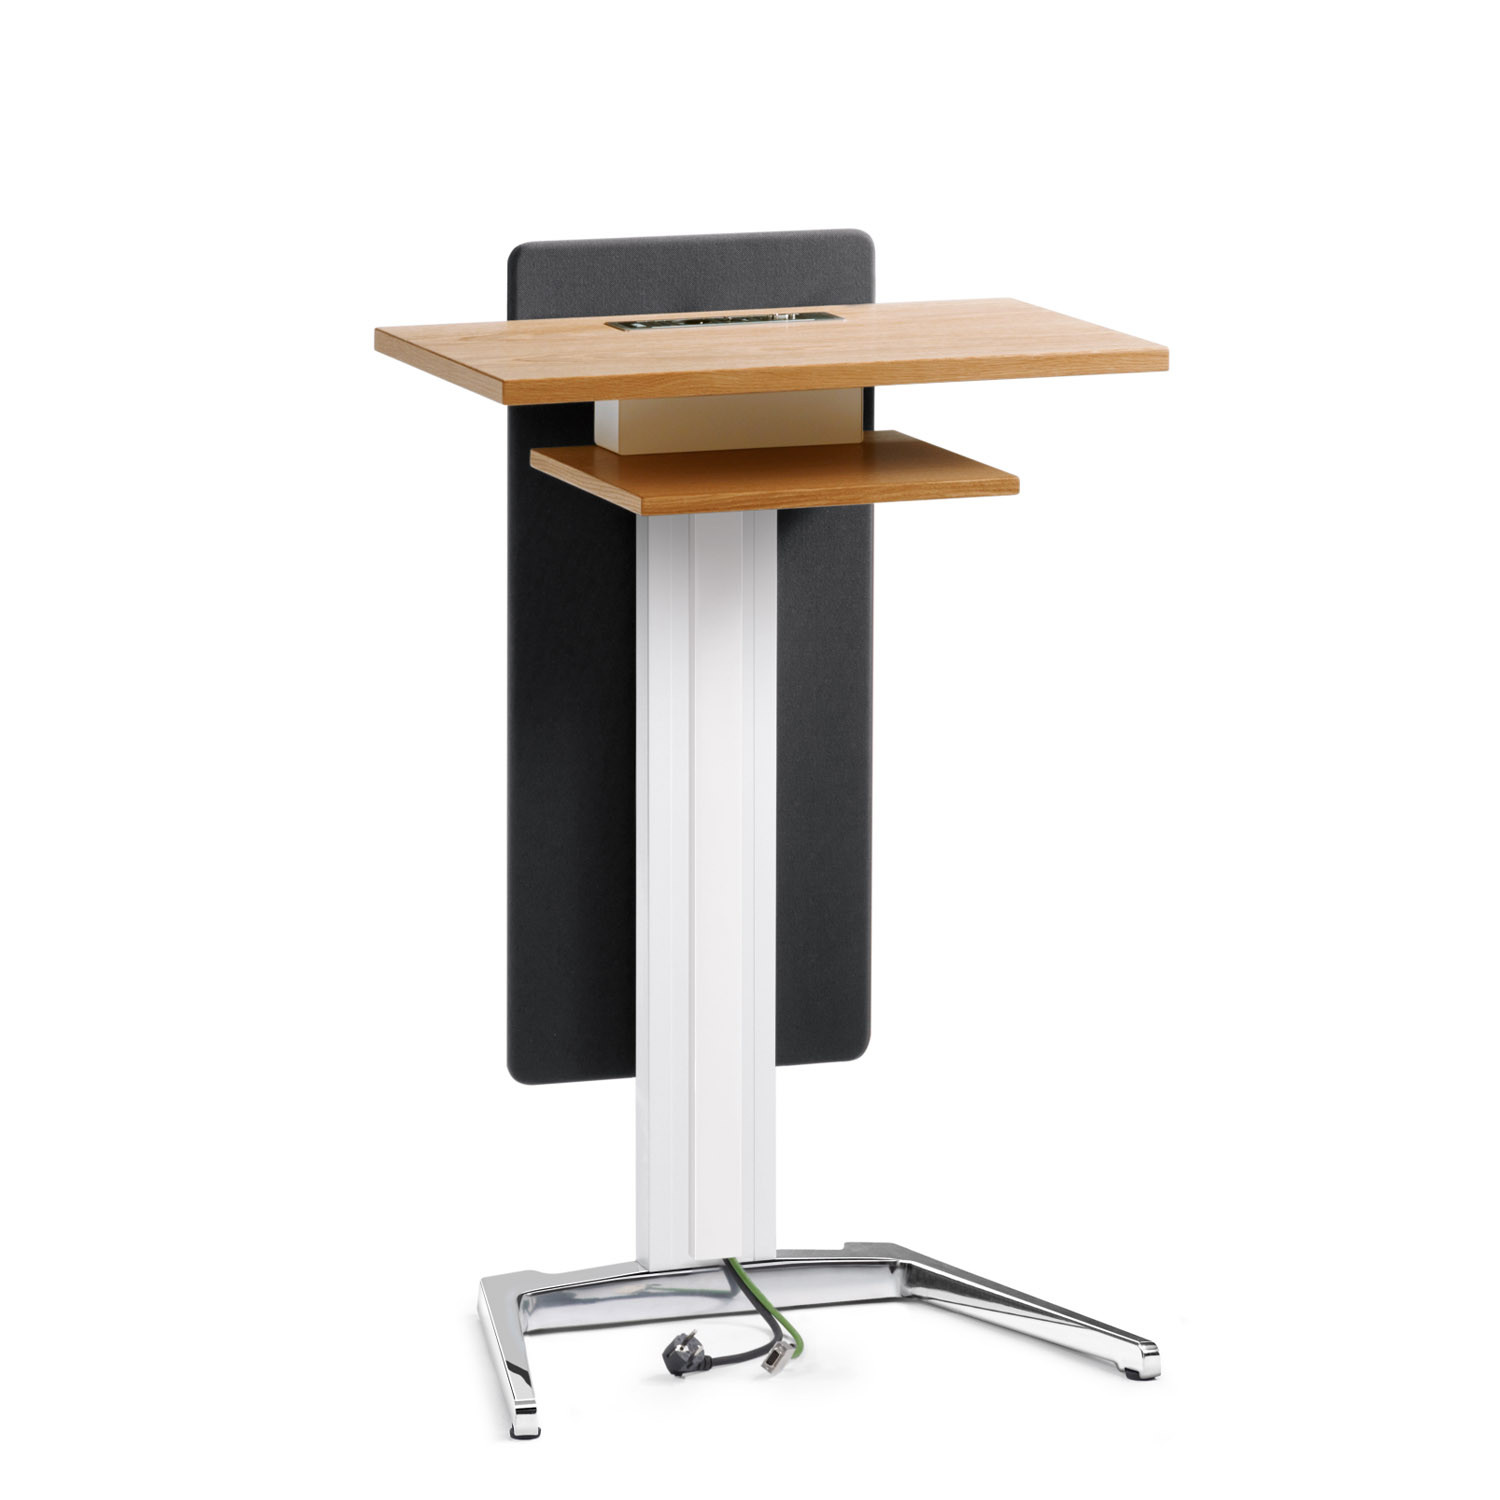 Brainstorm Lectern by Sedus